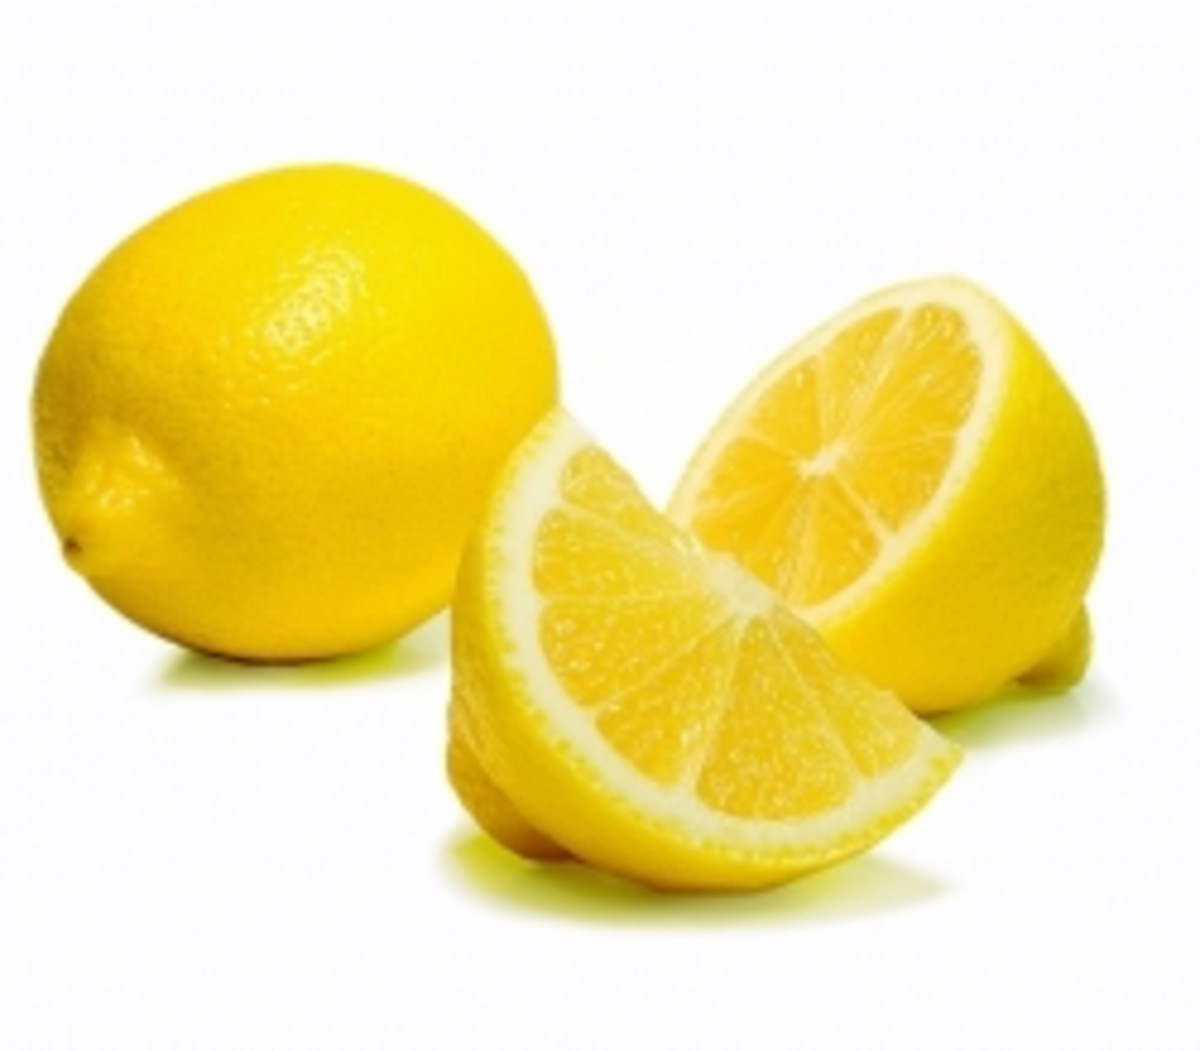 Master Cleanse Lemonade Diet - My Experience